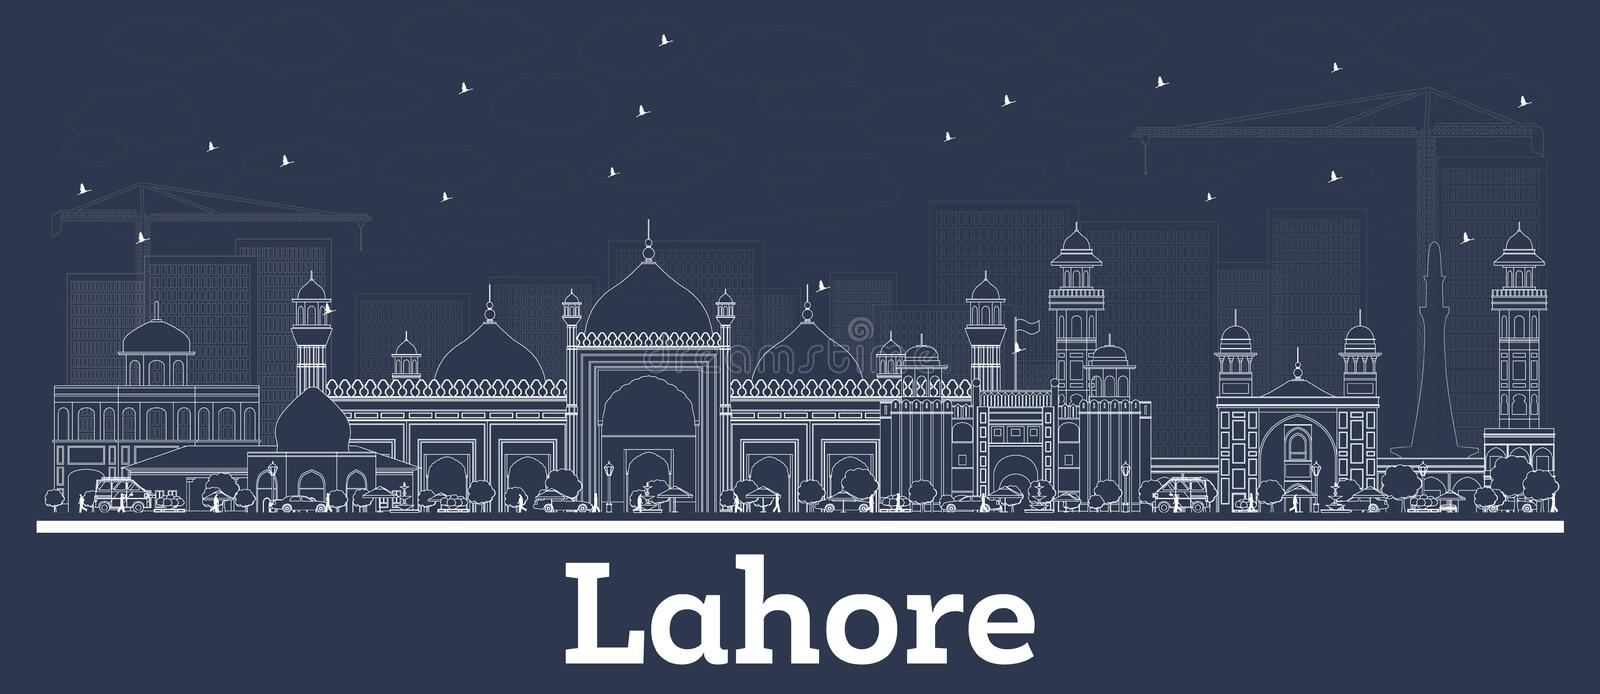 Outline Lahore Pakistan City Skyline with White Buildings. Vector Illustration. Business Travel and Tourism Concept with Historic Architecture. Lahore vector illustration